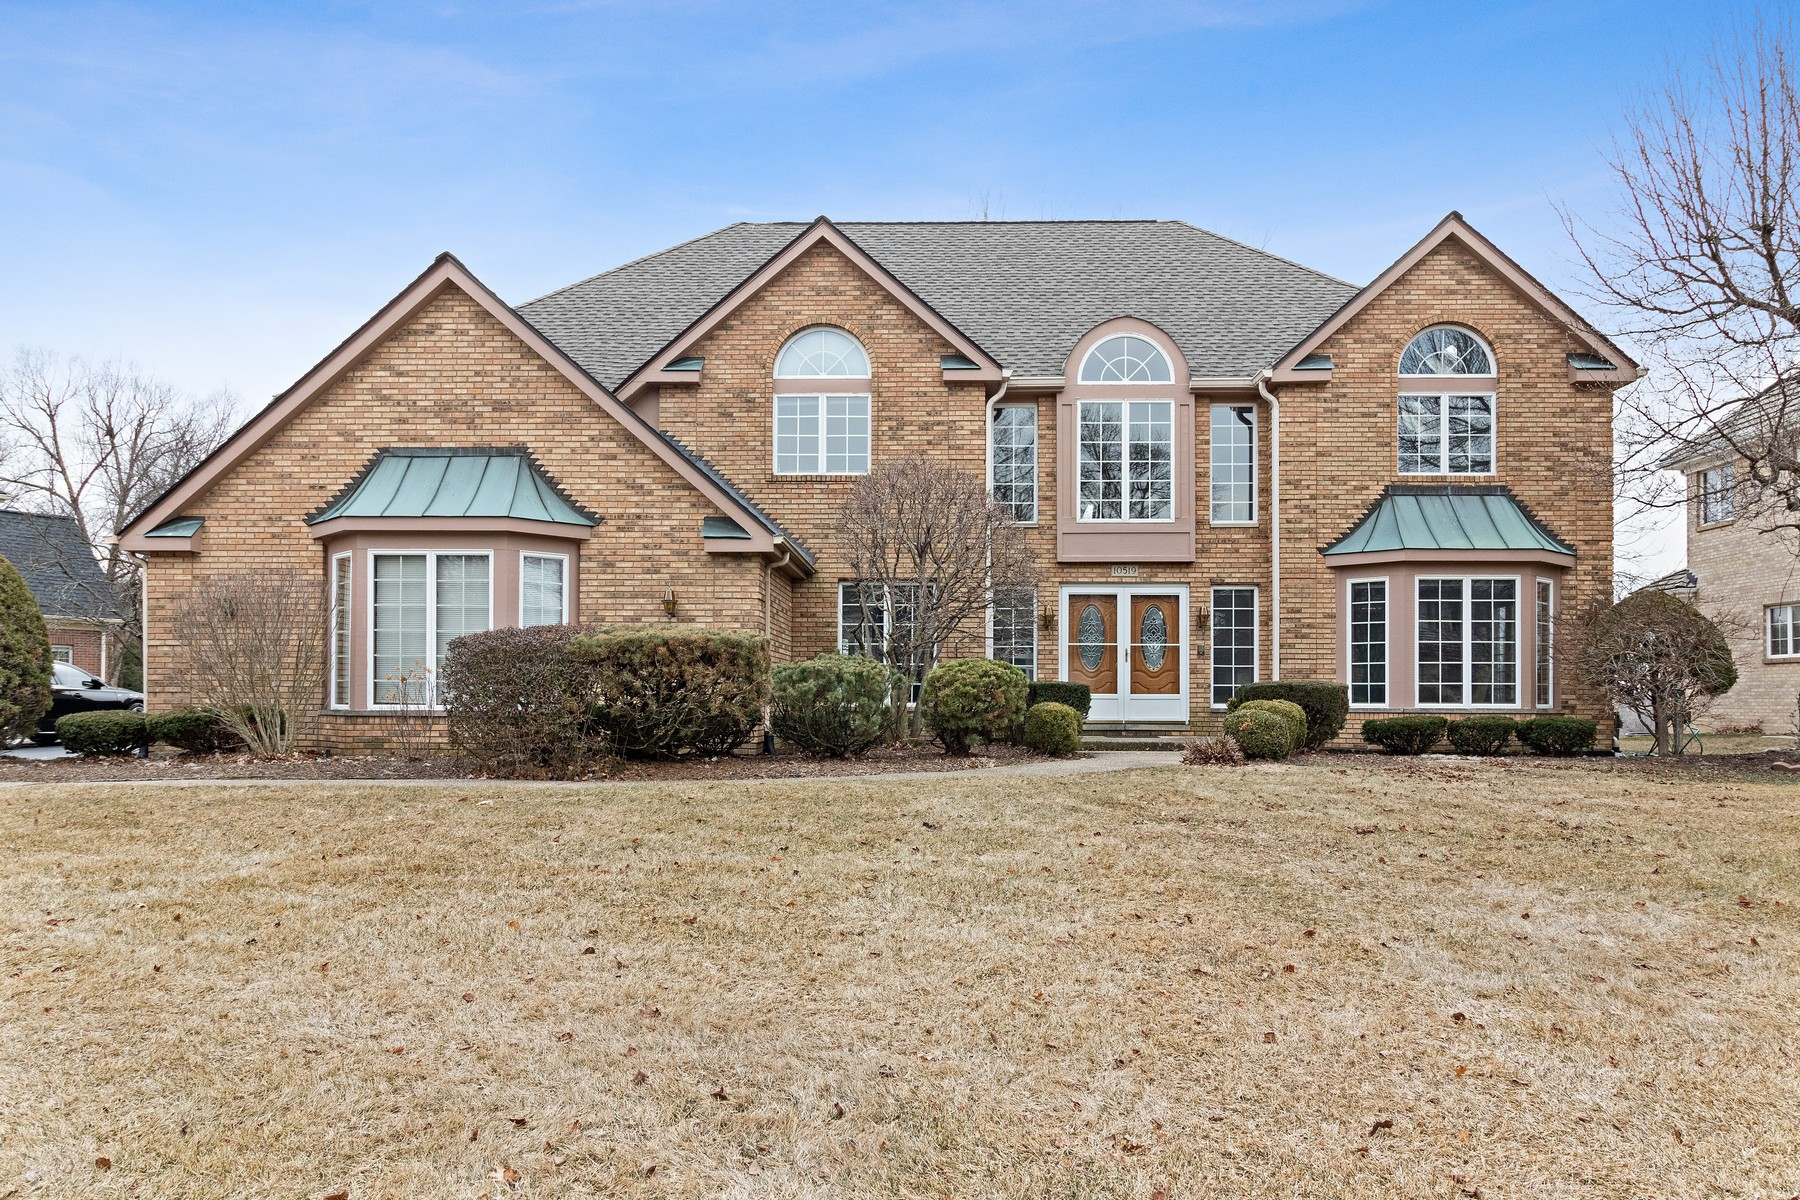 Single Family Home for Sale at Crystal Tree Country Club Living at it's Finest!! 10519 Wildflower Road Orland Park, Illinois 60462 United States